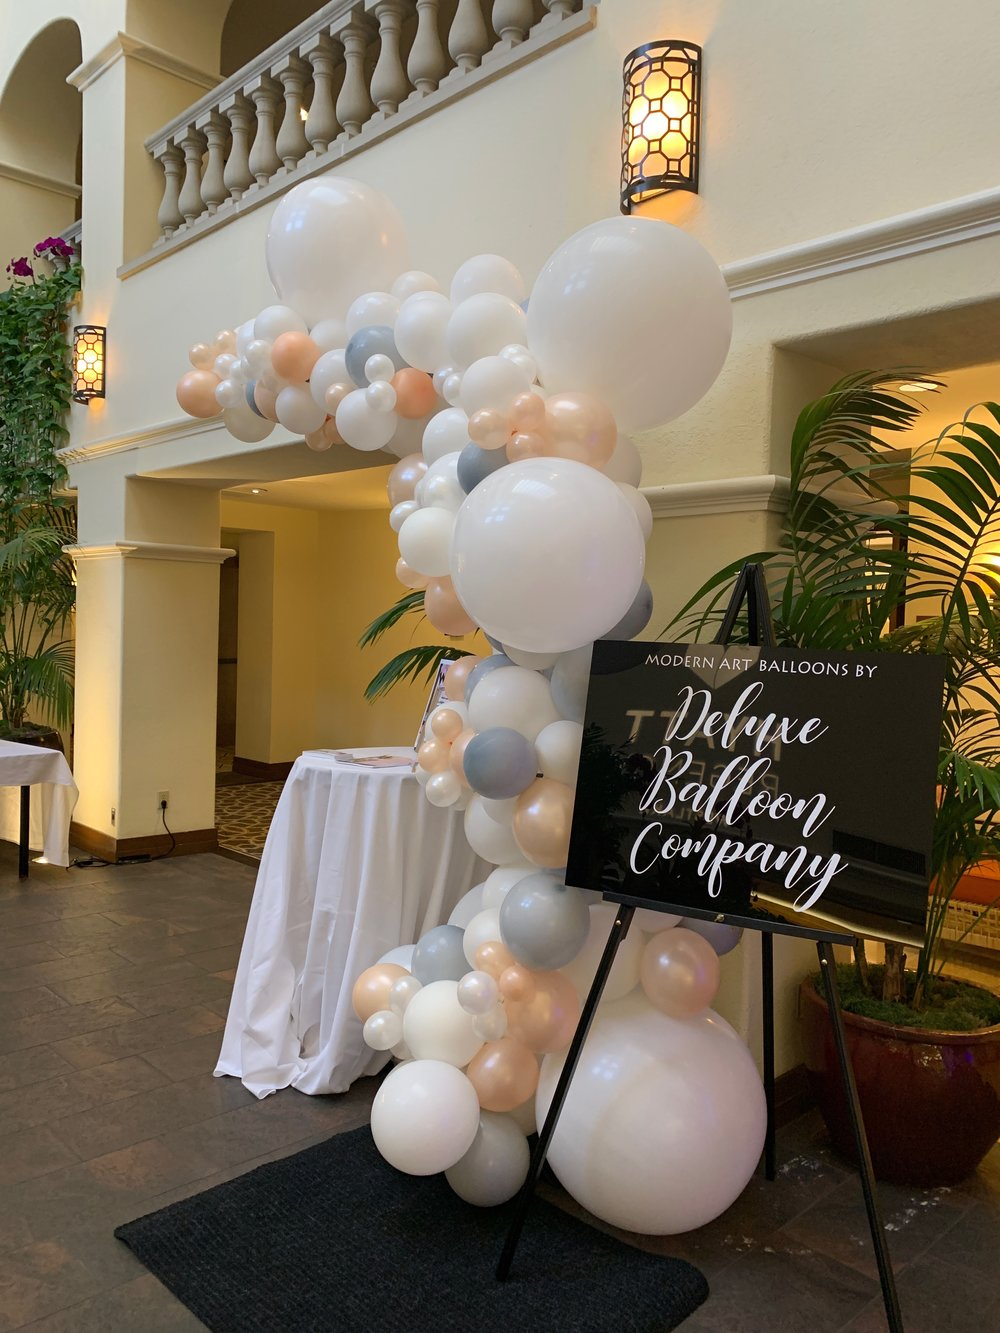 Image by The De Luxe Balloon Company